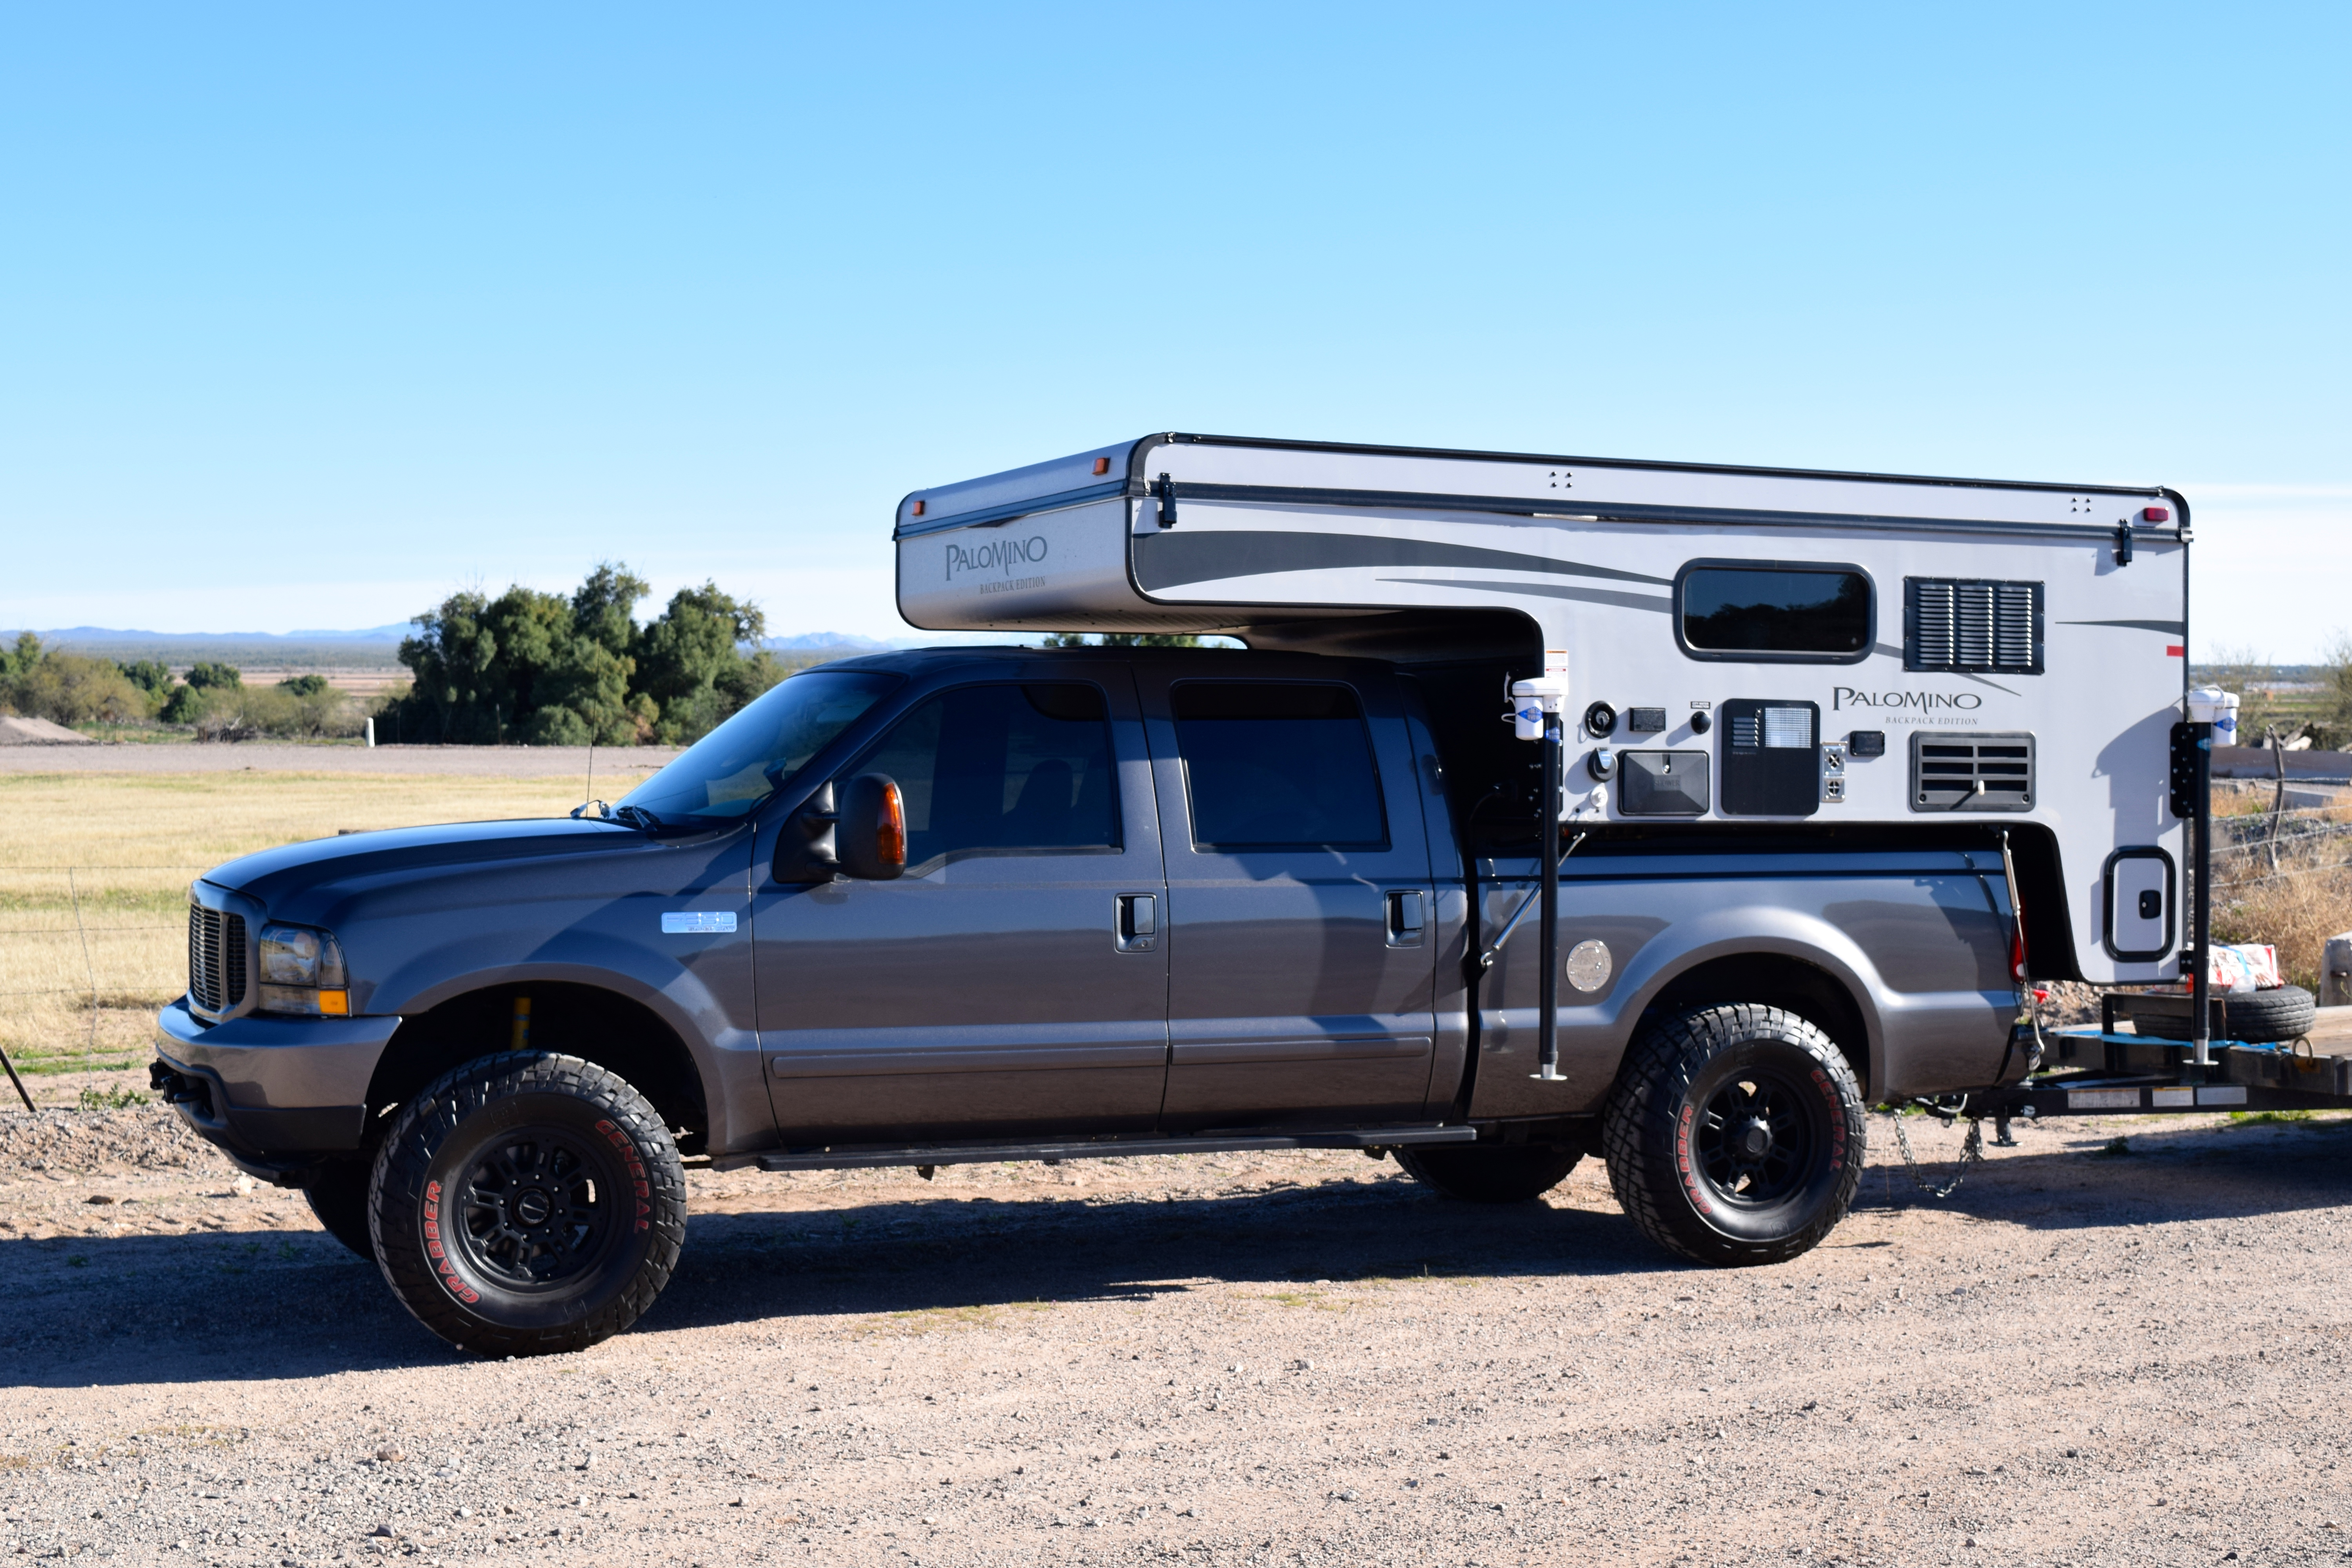 2003 Ford F350 Diesel >> In the Spotlight: The 2016 Palomino 1251 Backpack Edition ...